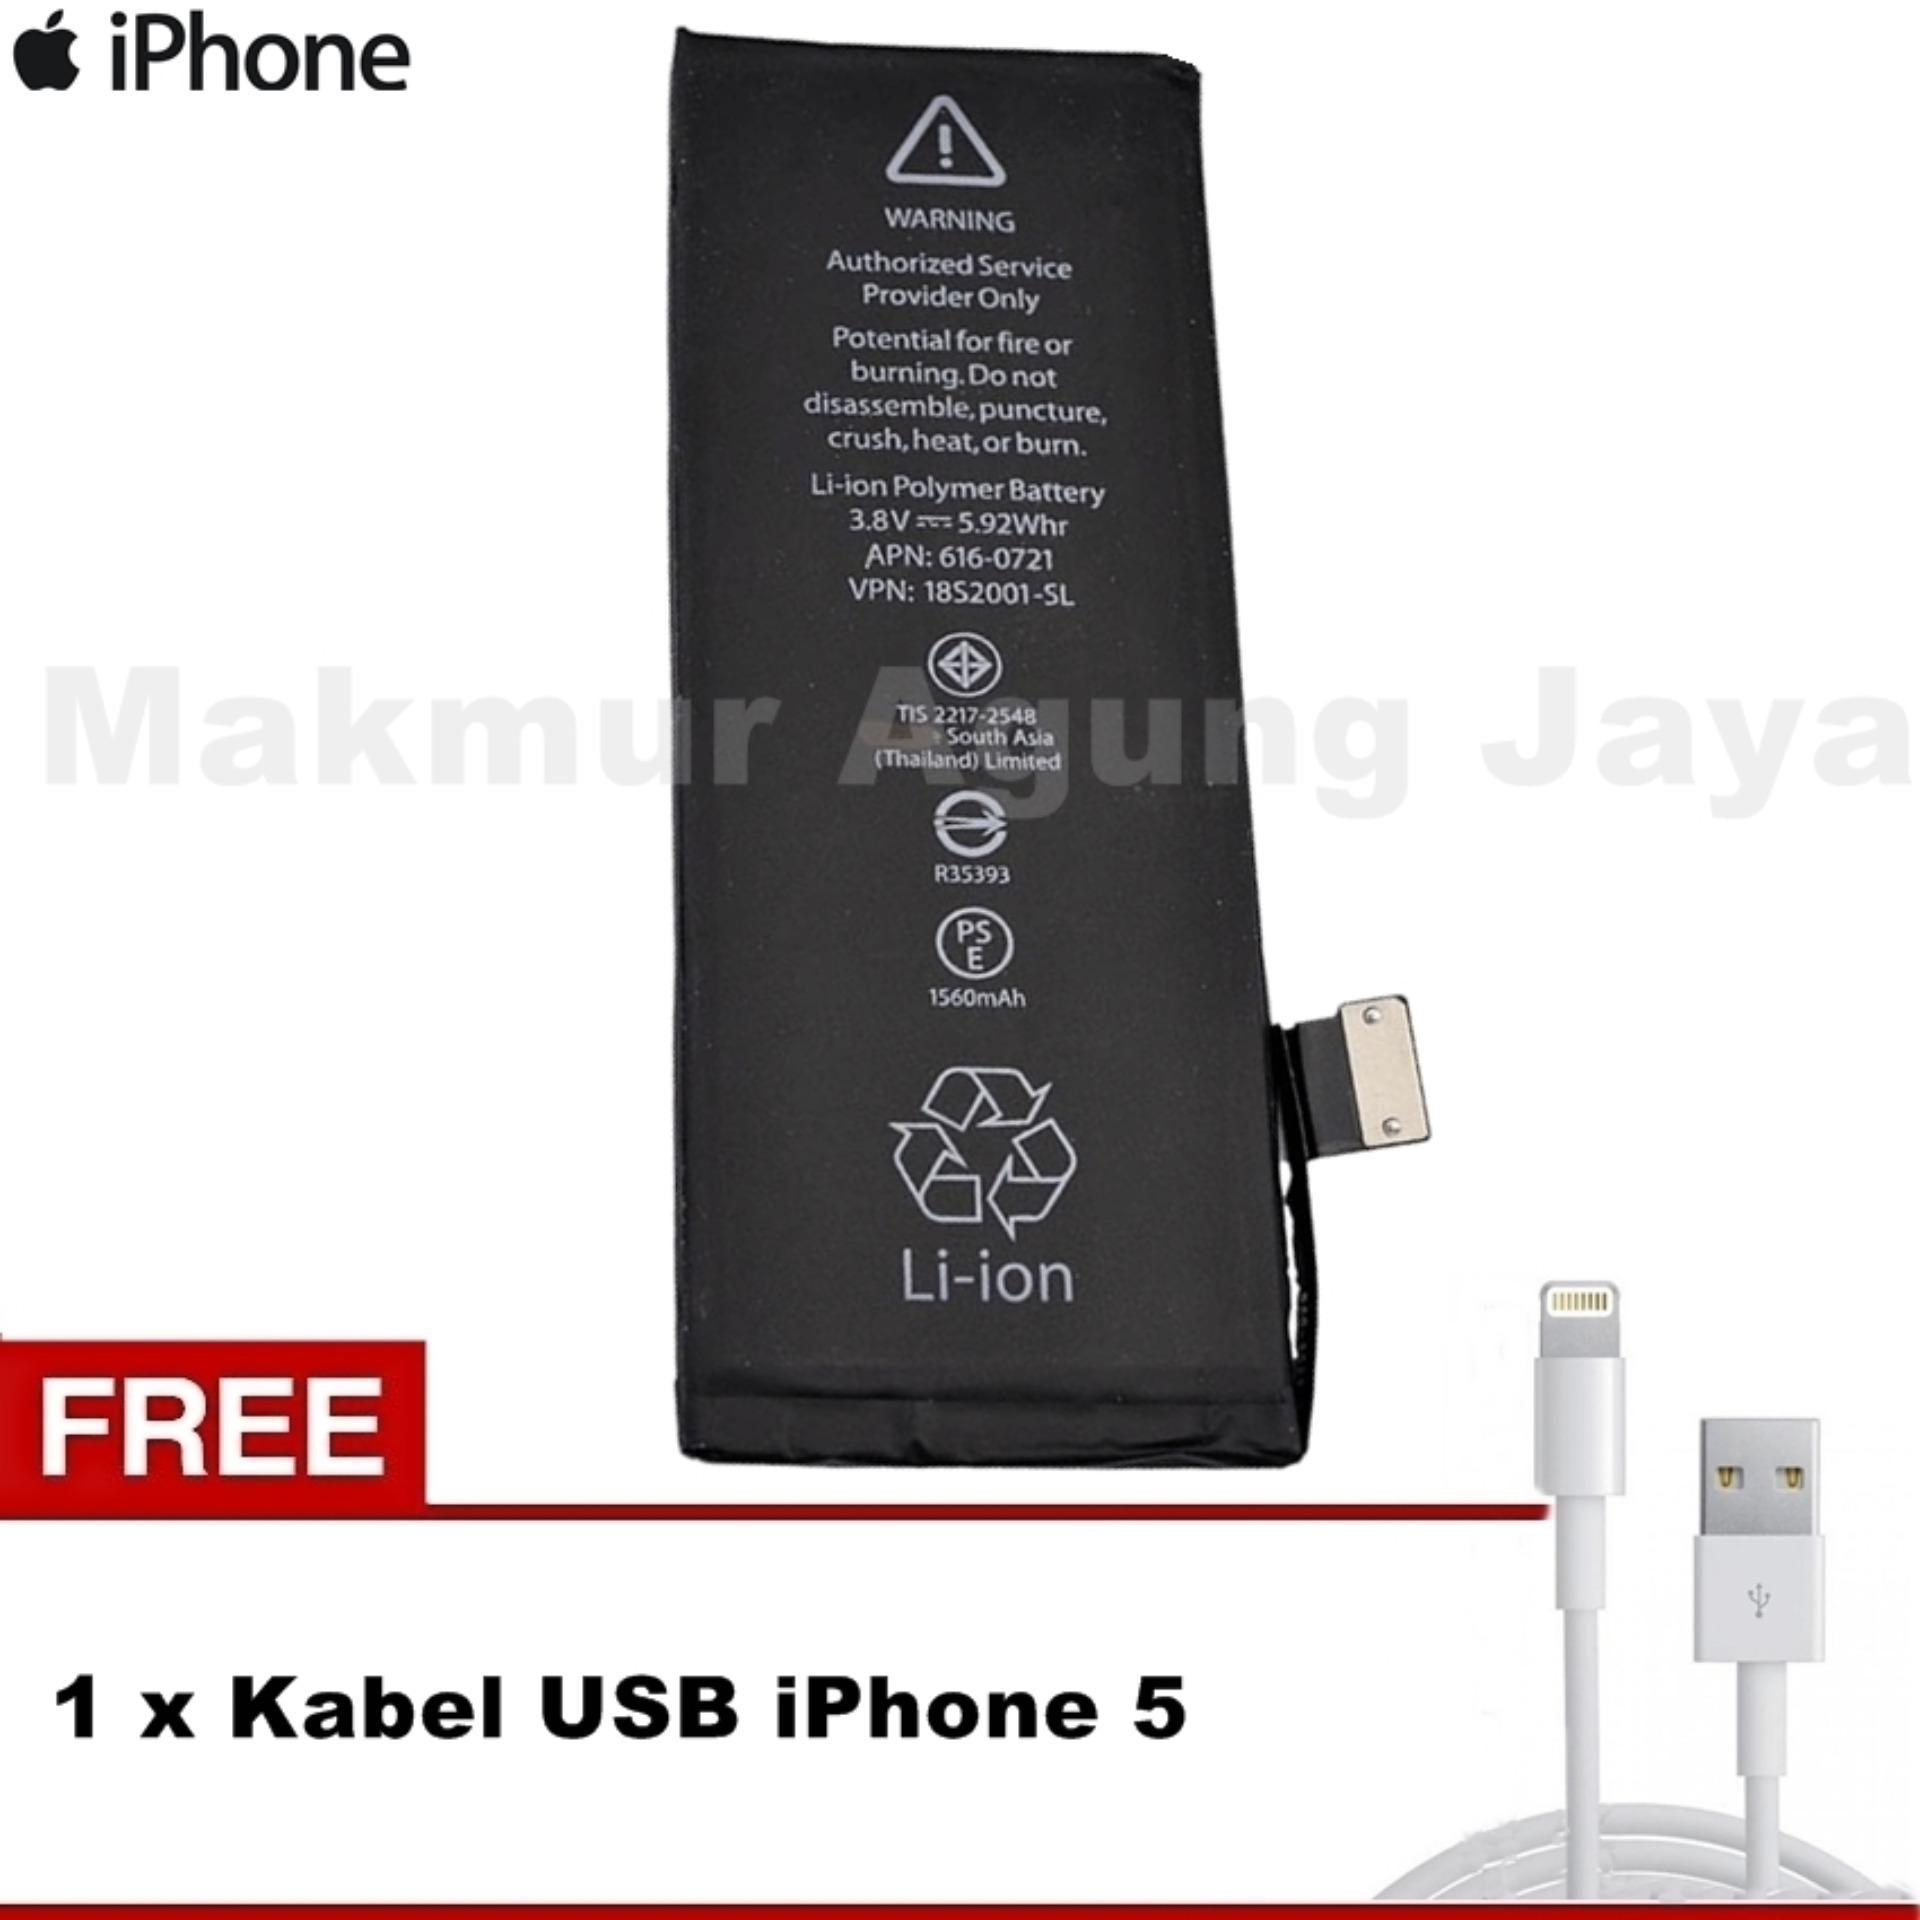 Apple Baterai Iphone 5g Genuine Standart Battery Original Hippo 4s 1430 Mah Premium Cell Quality Pencari Harga 5 5s 1560mah Free Kabel Usb